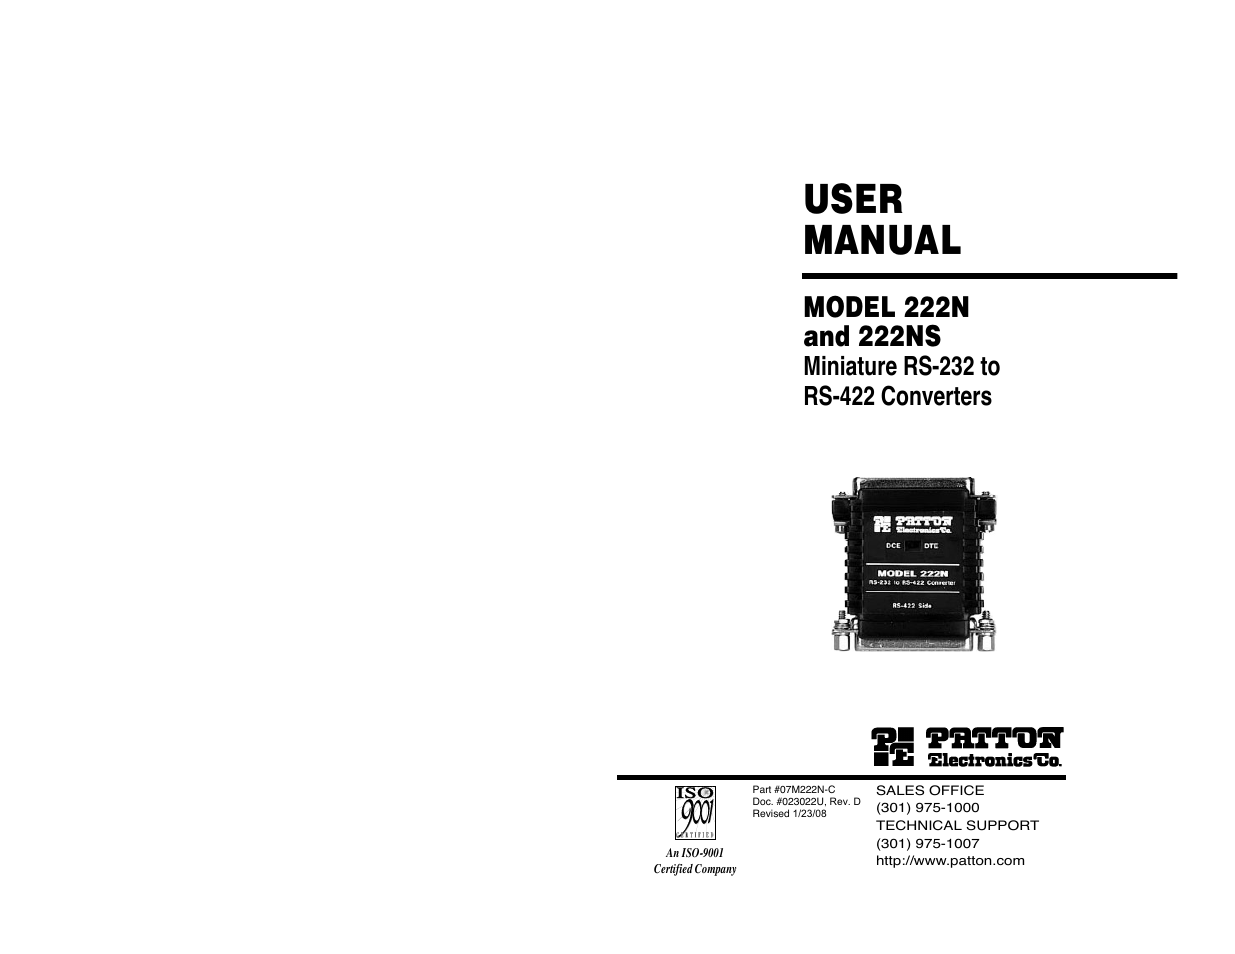 patton electronic 222n user manual 20 pages also for 222ns rh manualsdir com